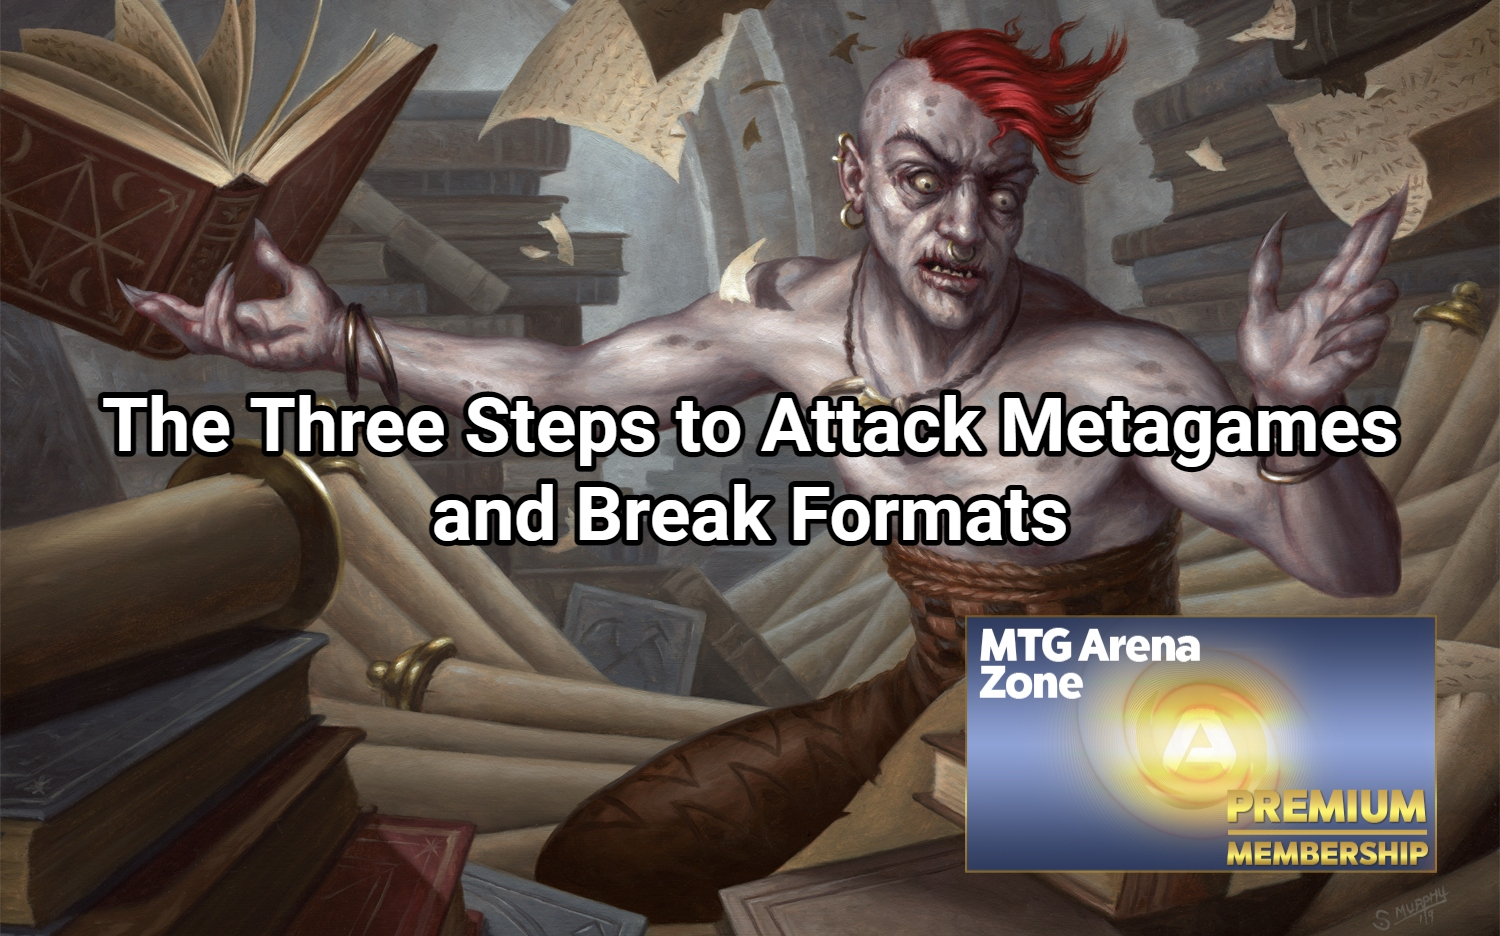 The Three Steps to Attack Metagames and Break Formats